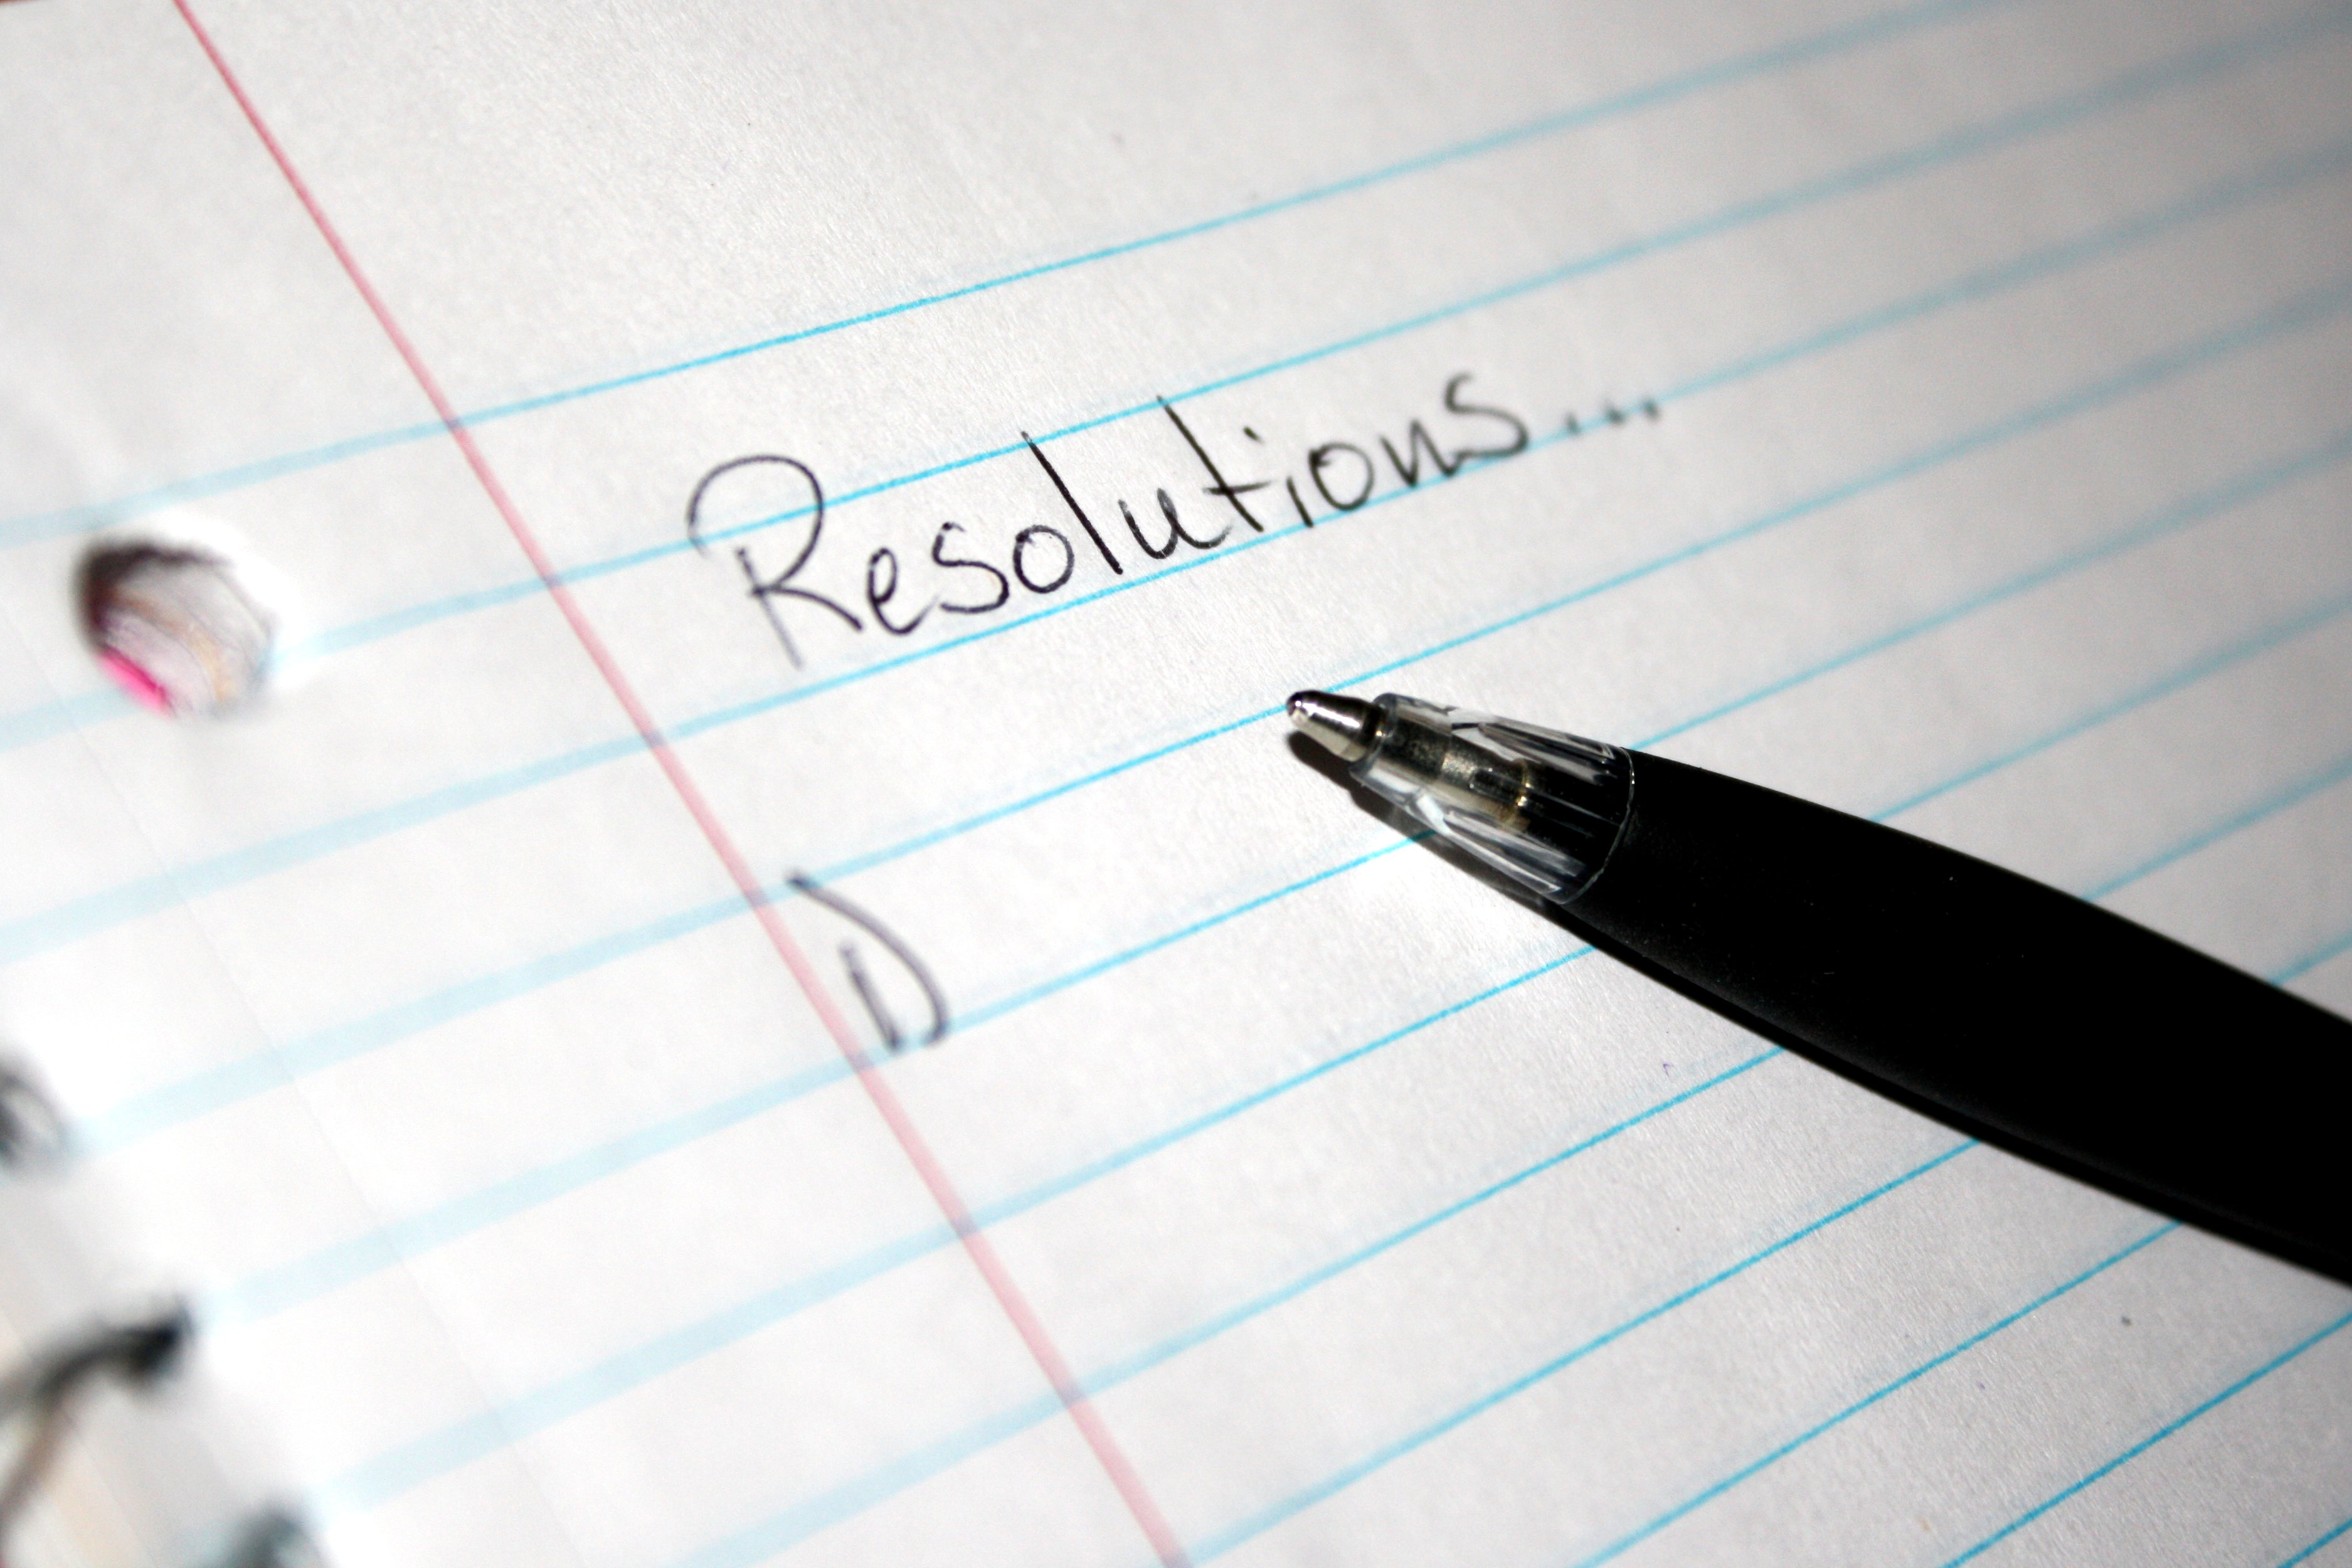 Reframing New Year's resolutions can lead to success